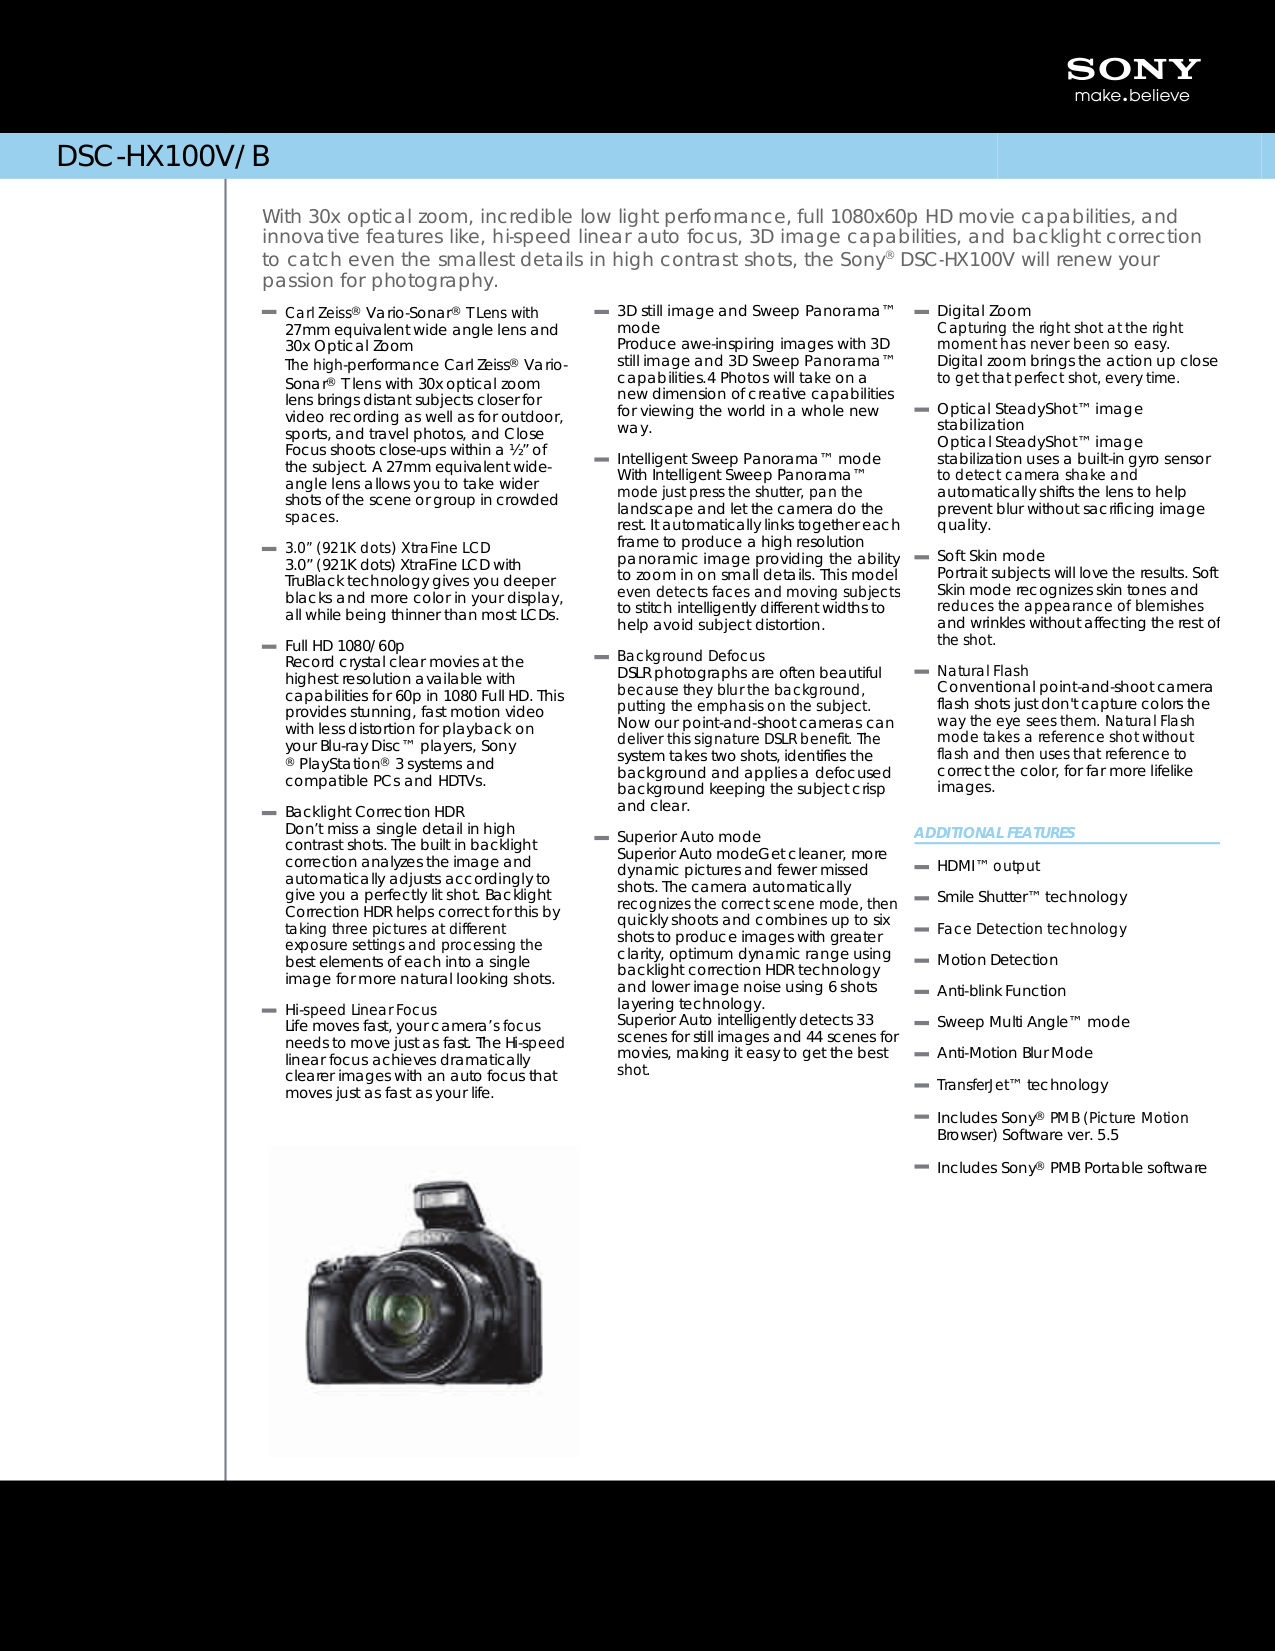 Download free pdf for Sony Cybershot,Cyber-shot DSC-HX100V